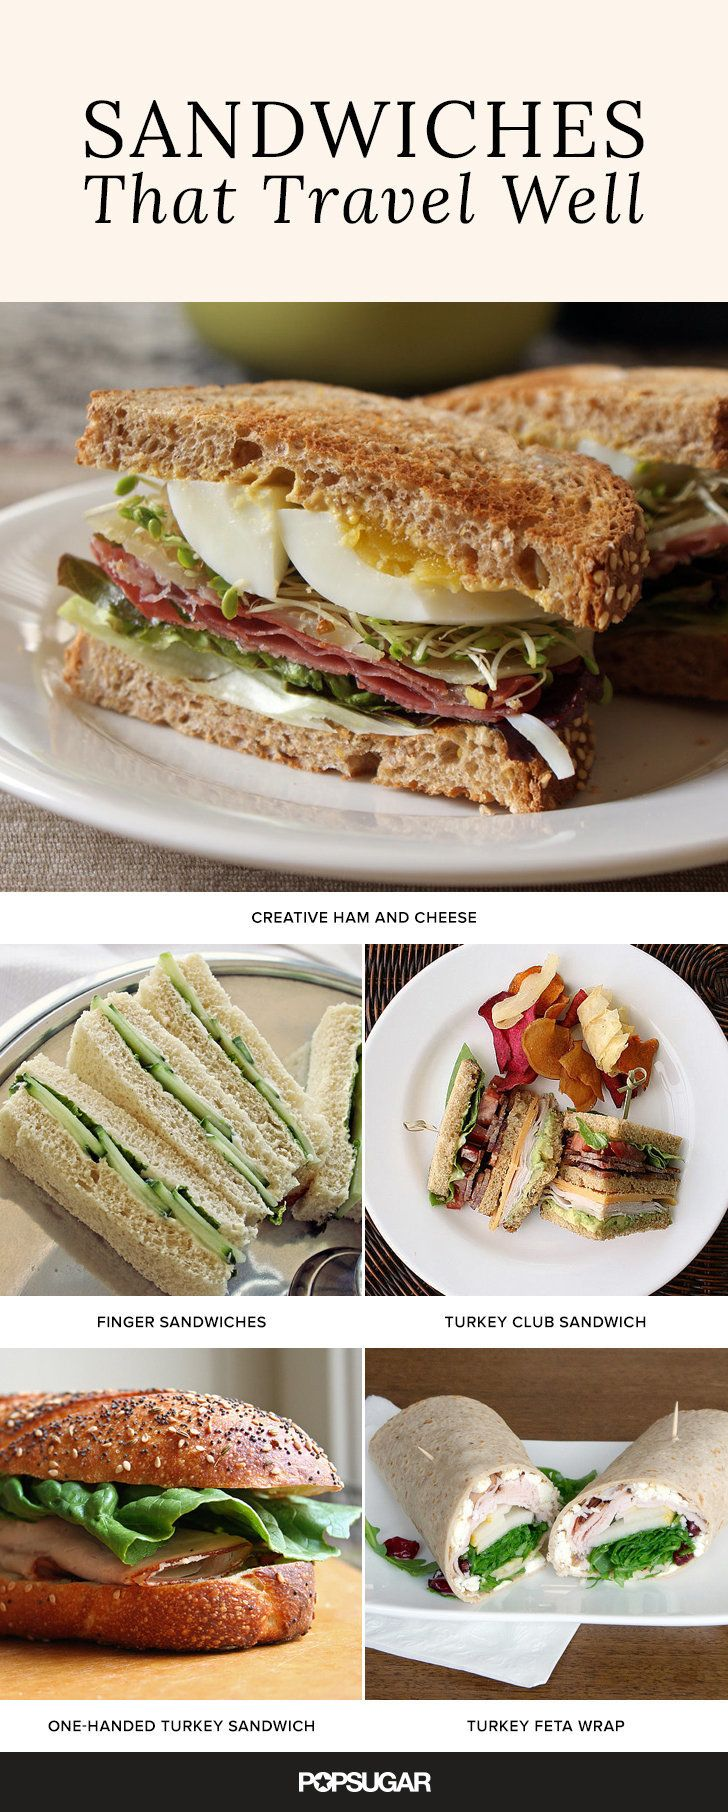 These sandwiches are ready to withstand the weather, challenges, and other wear and tear that may occur during travel.